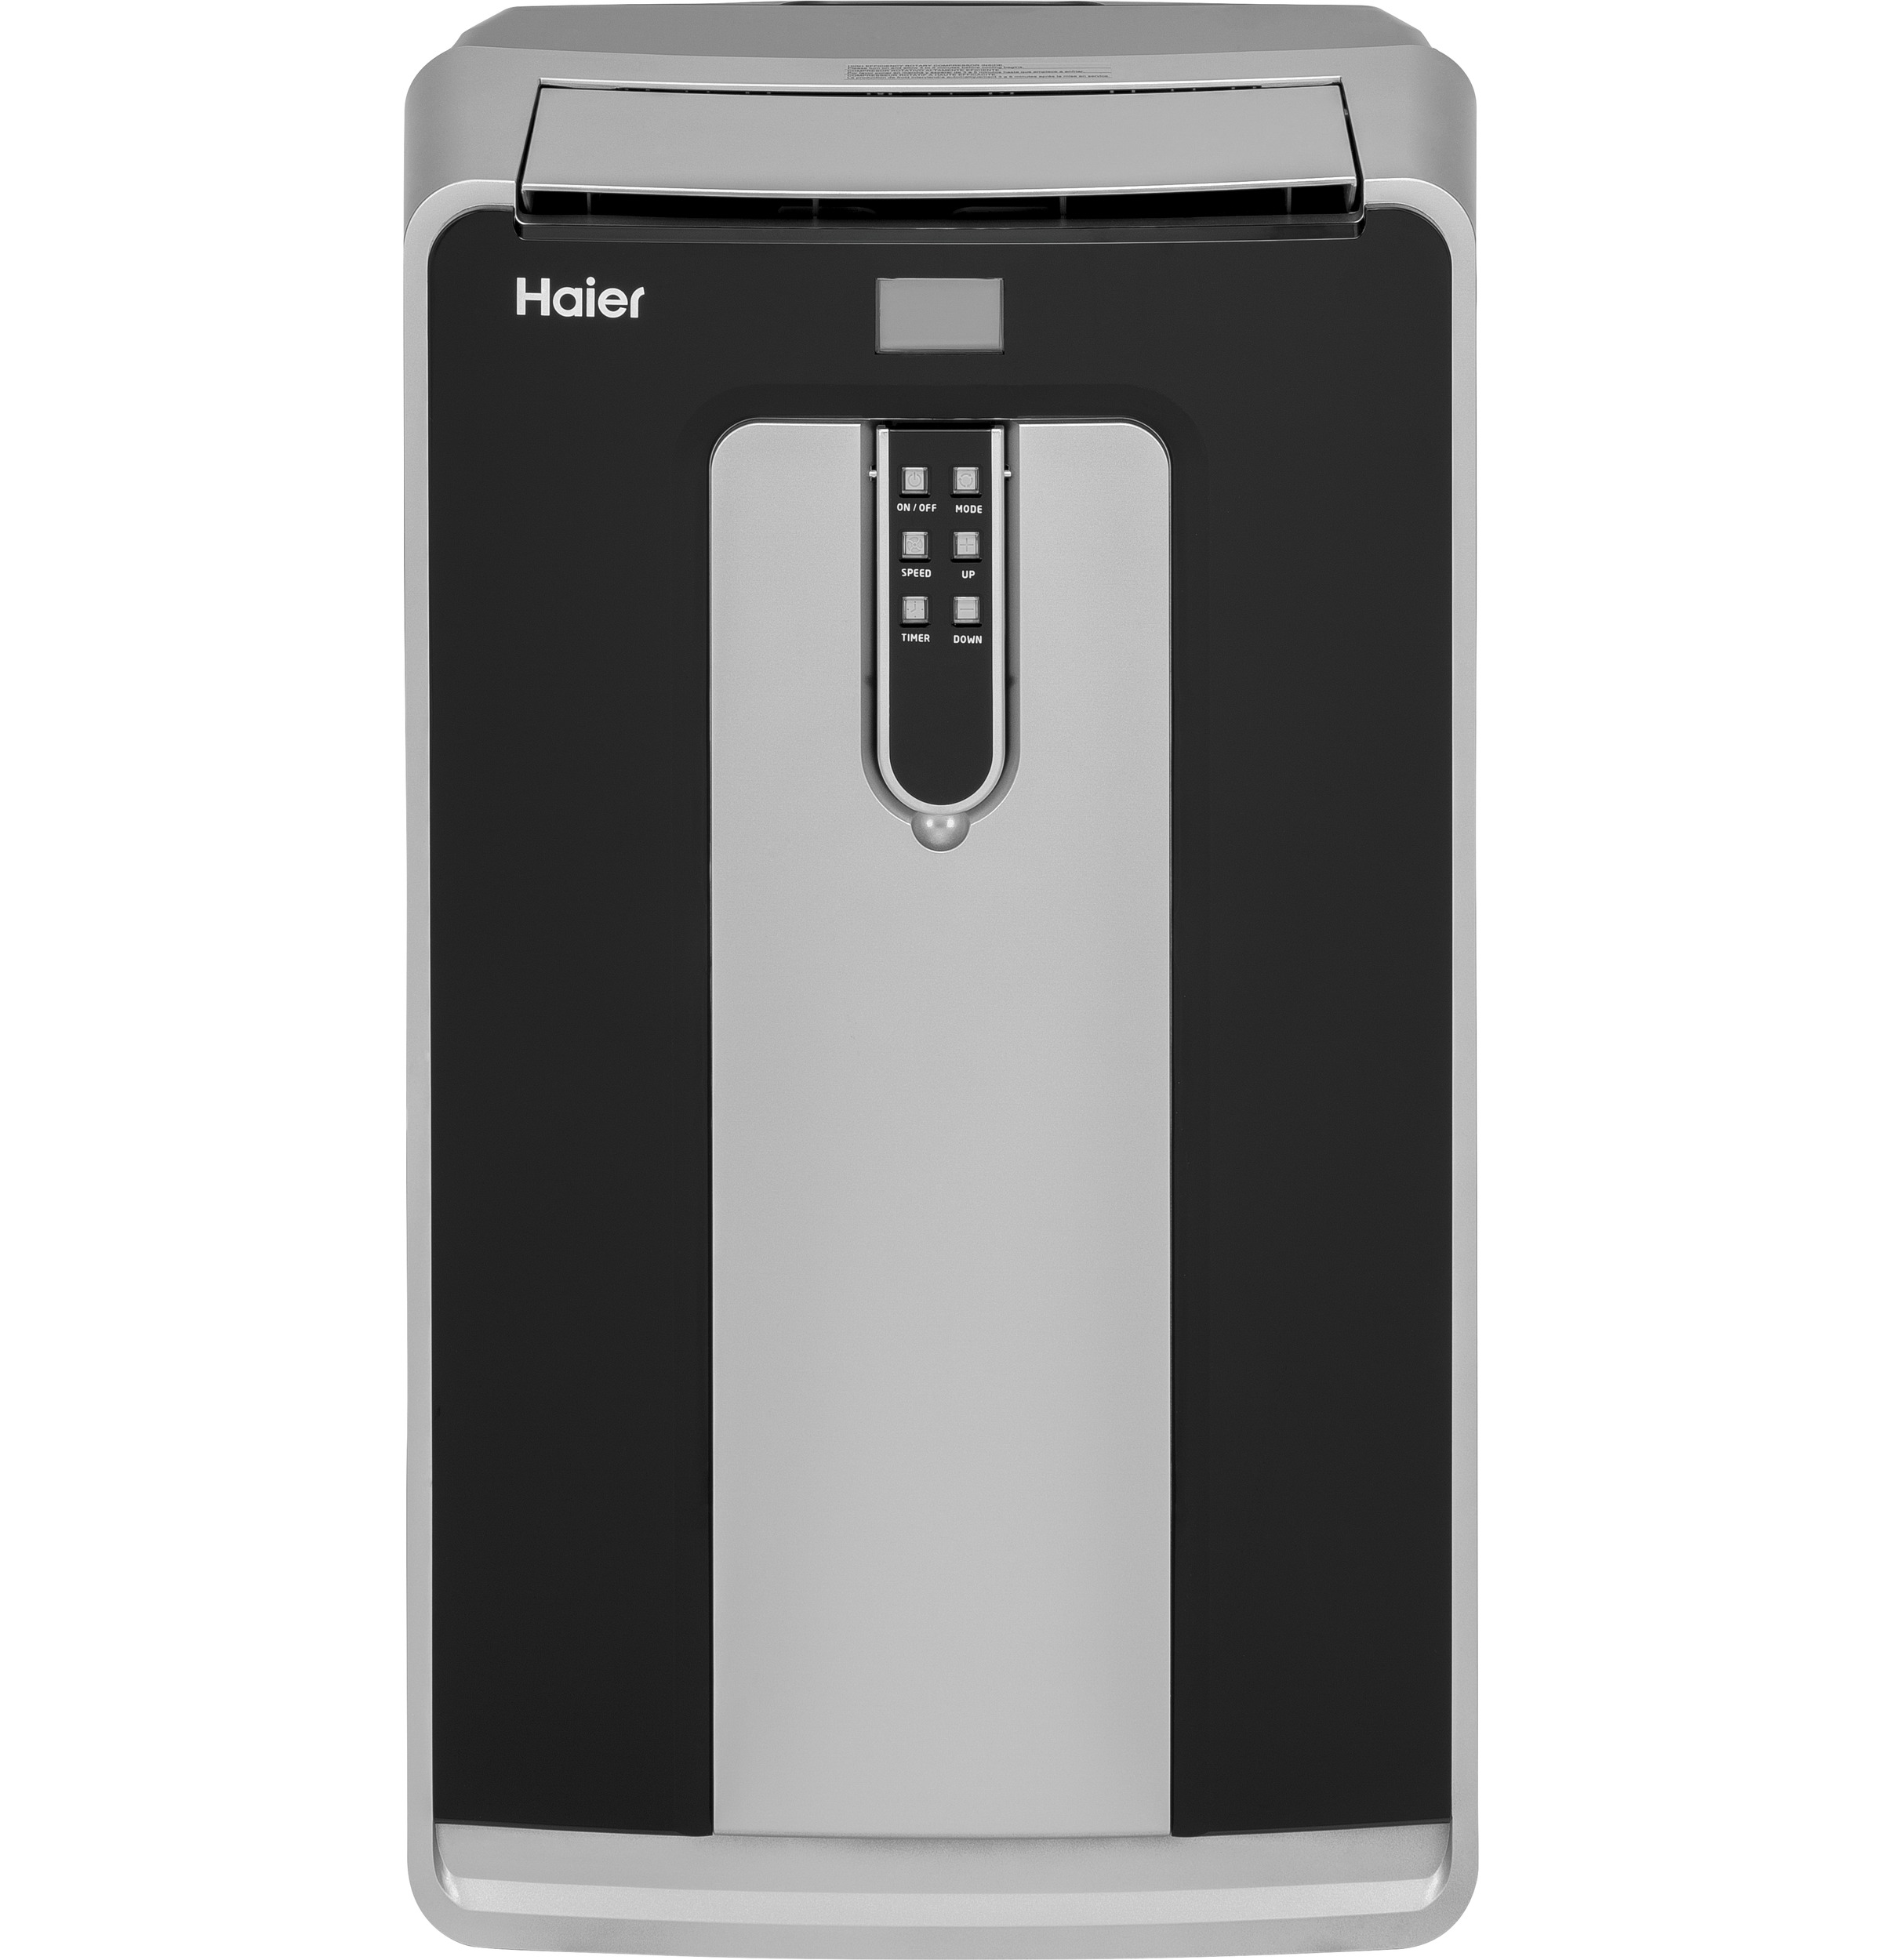 Haier Portable Air Conditioner - Dual Hose